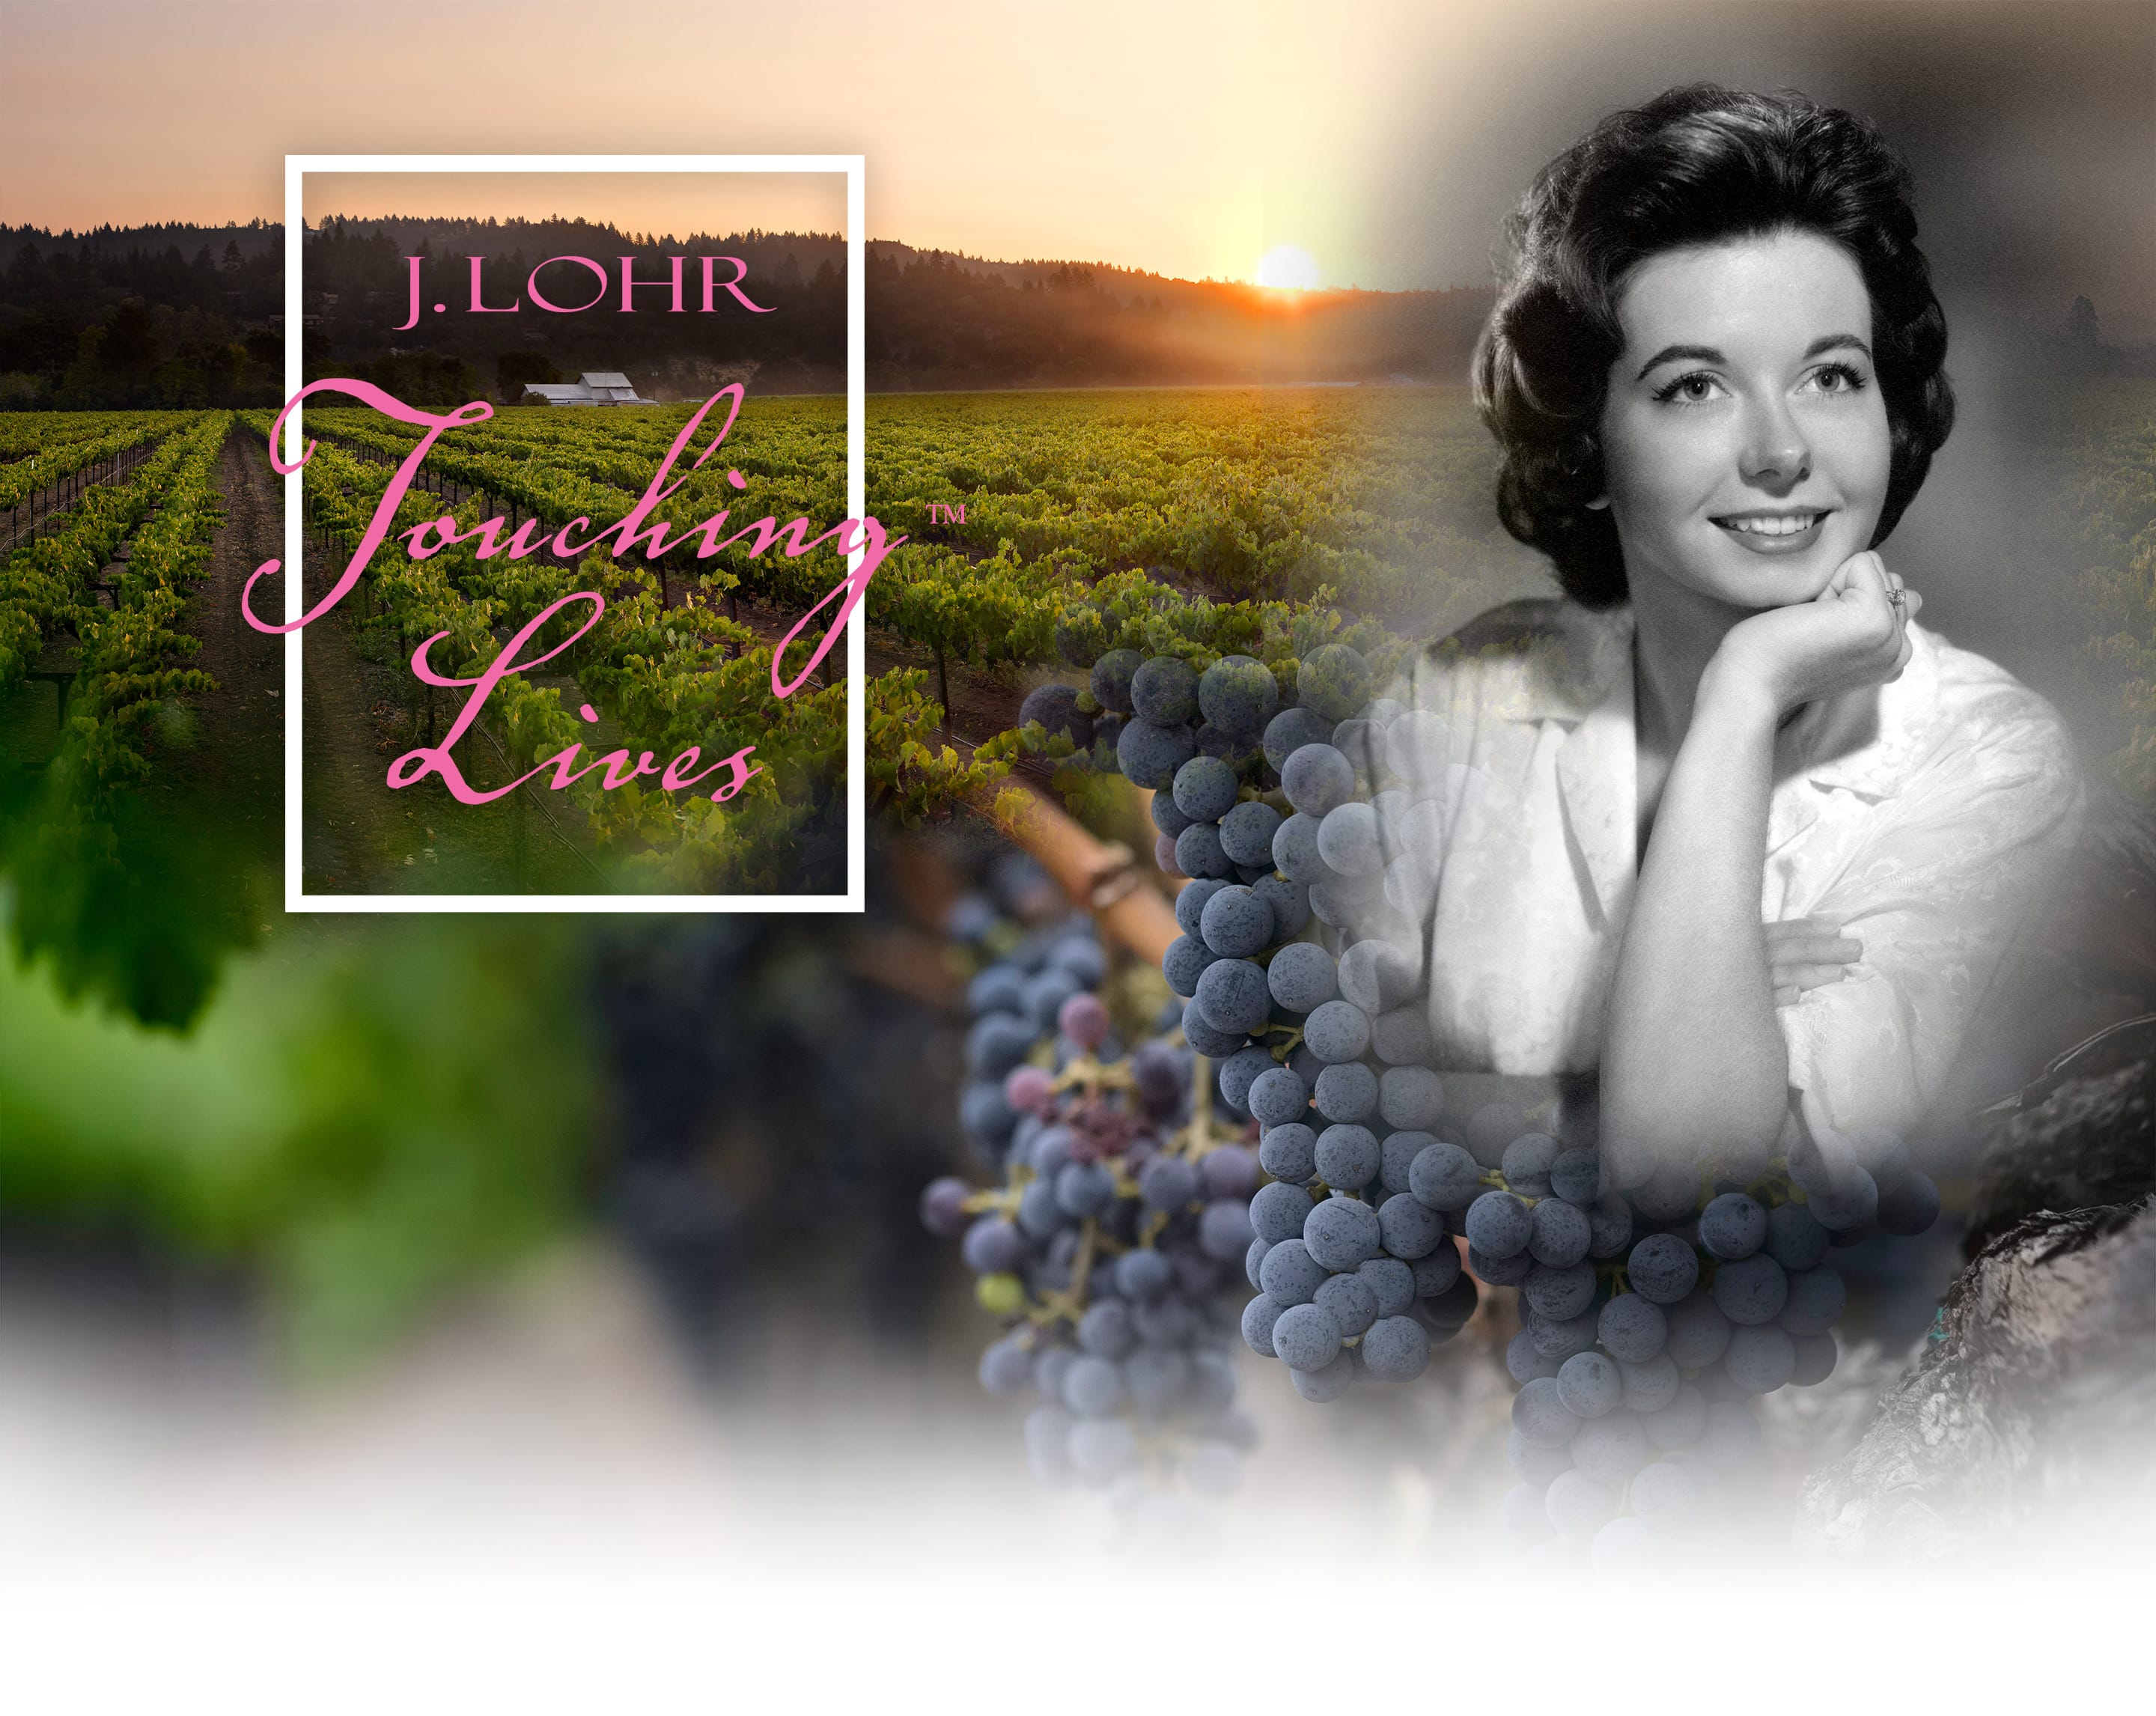 J. Lohr Touching Lives partnership with National Breast Cancer Foundation. Truluck's is donating $20 for dine-in and $10 for curbside orders to NBCF during the month of October 2020 for every bottle of J. Lohr Carol's Vineyard Cabernet Sauvignon purchased.